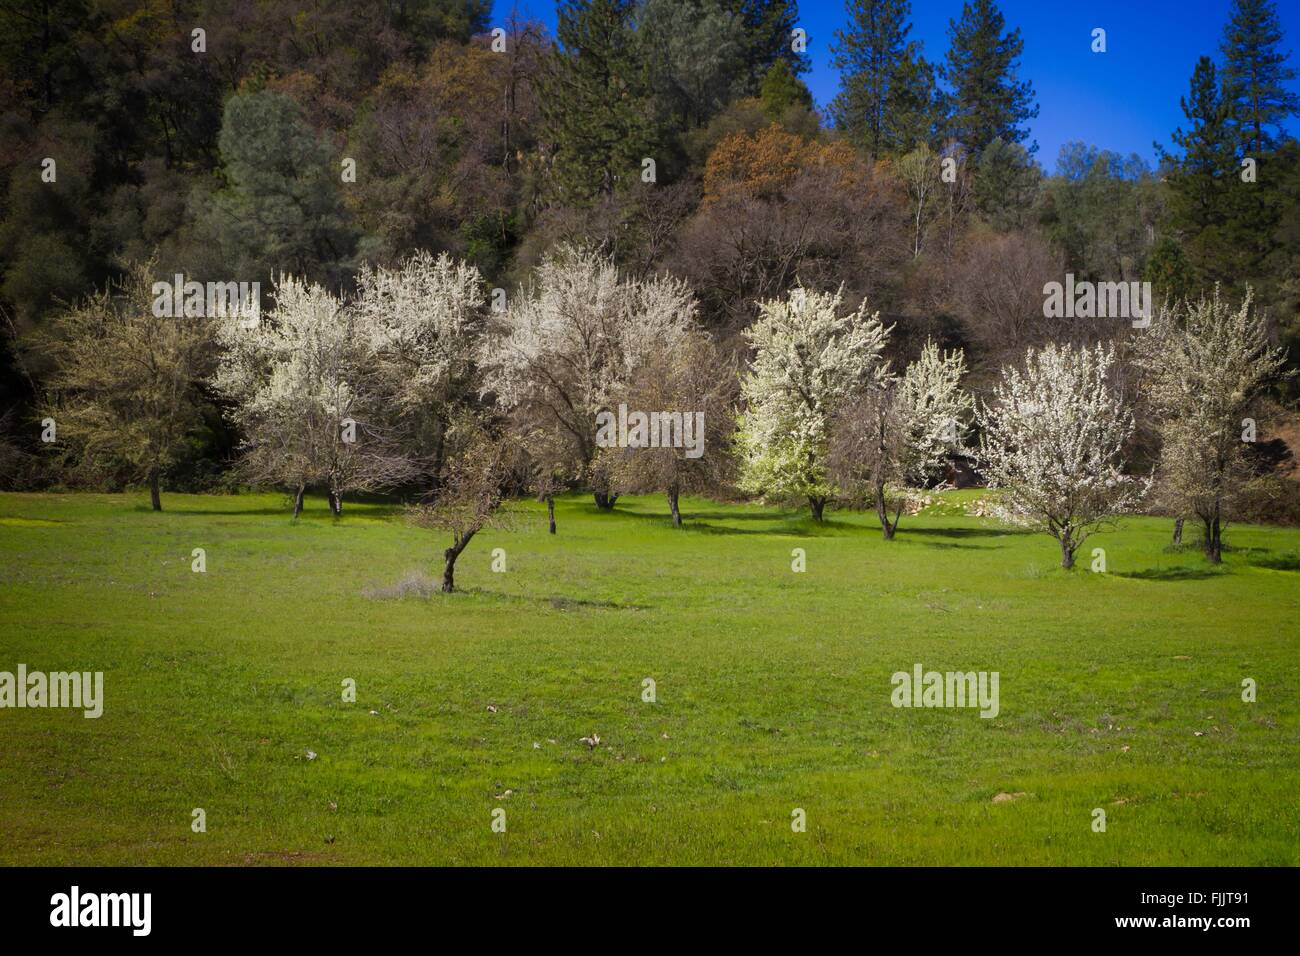 Historic Monroe Orchard, Marshall Gold Discovery State Historic Park, Coloma, California - Stock Image